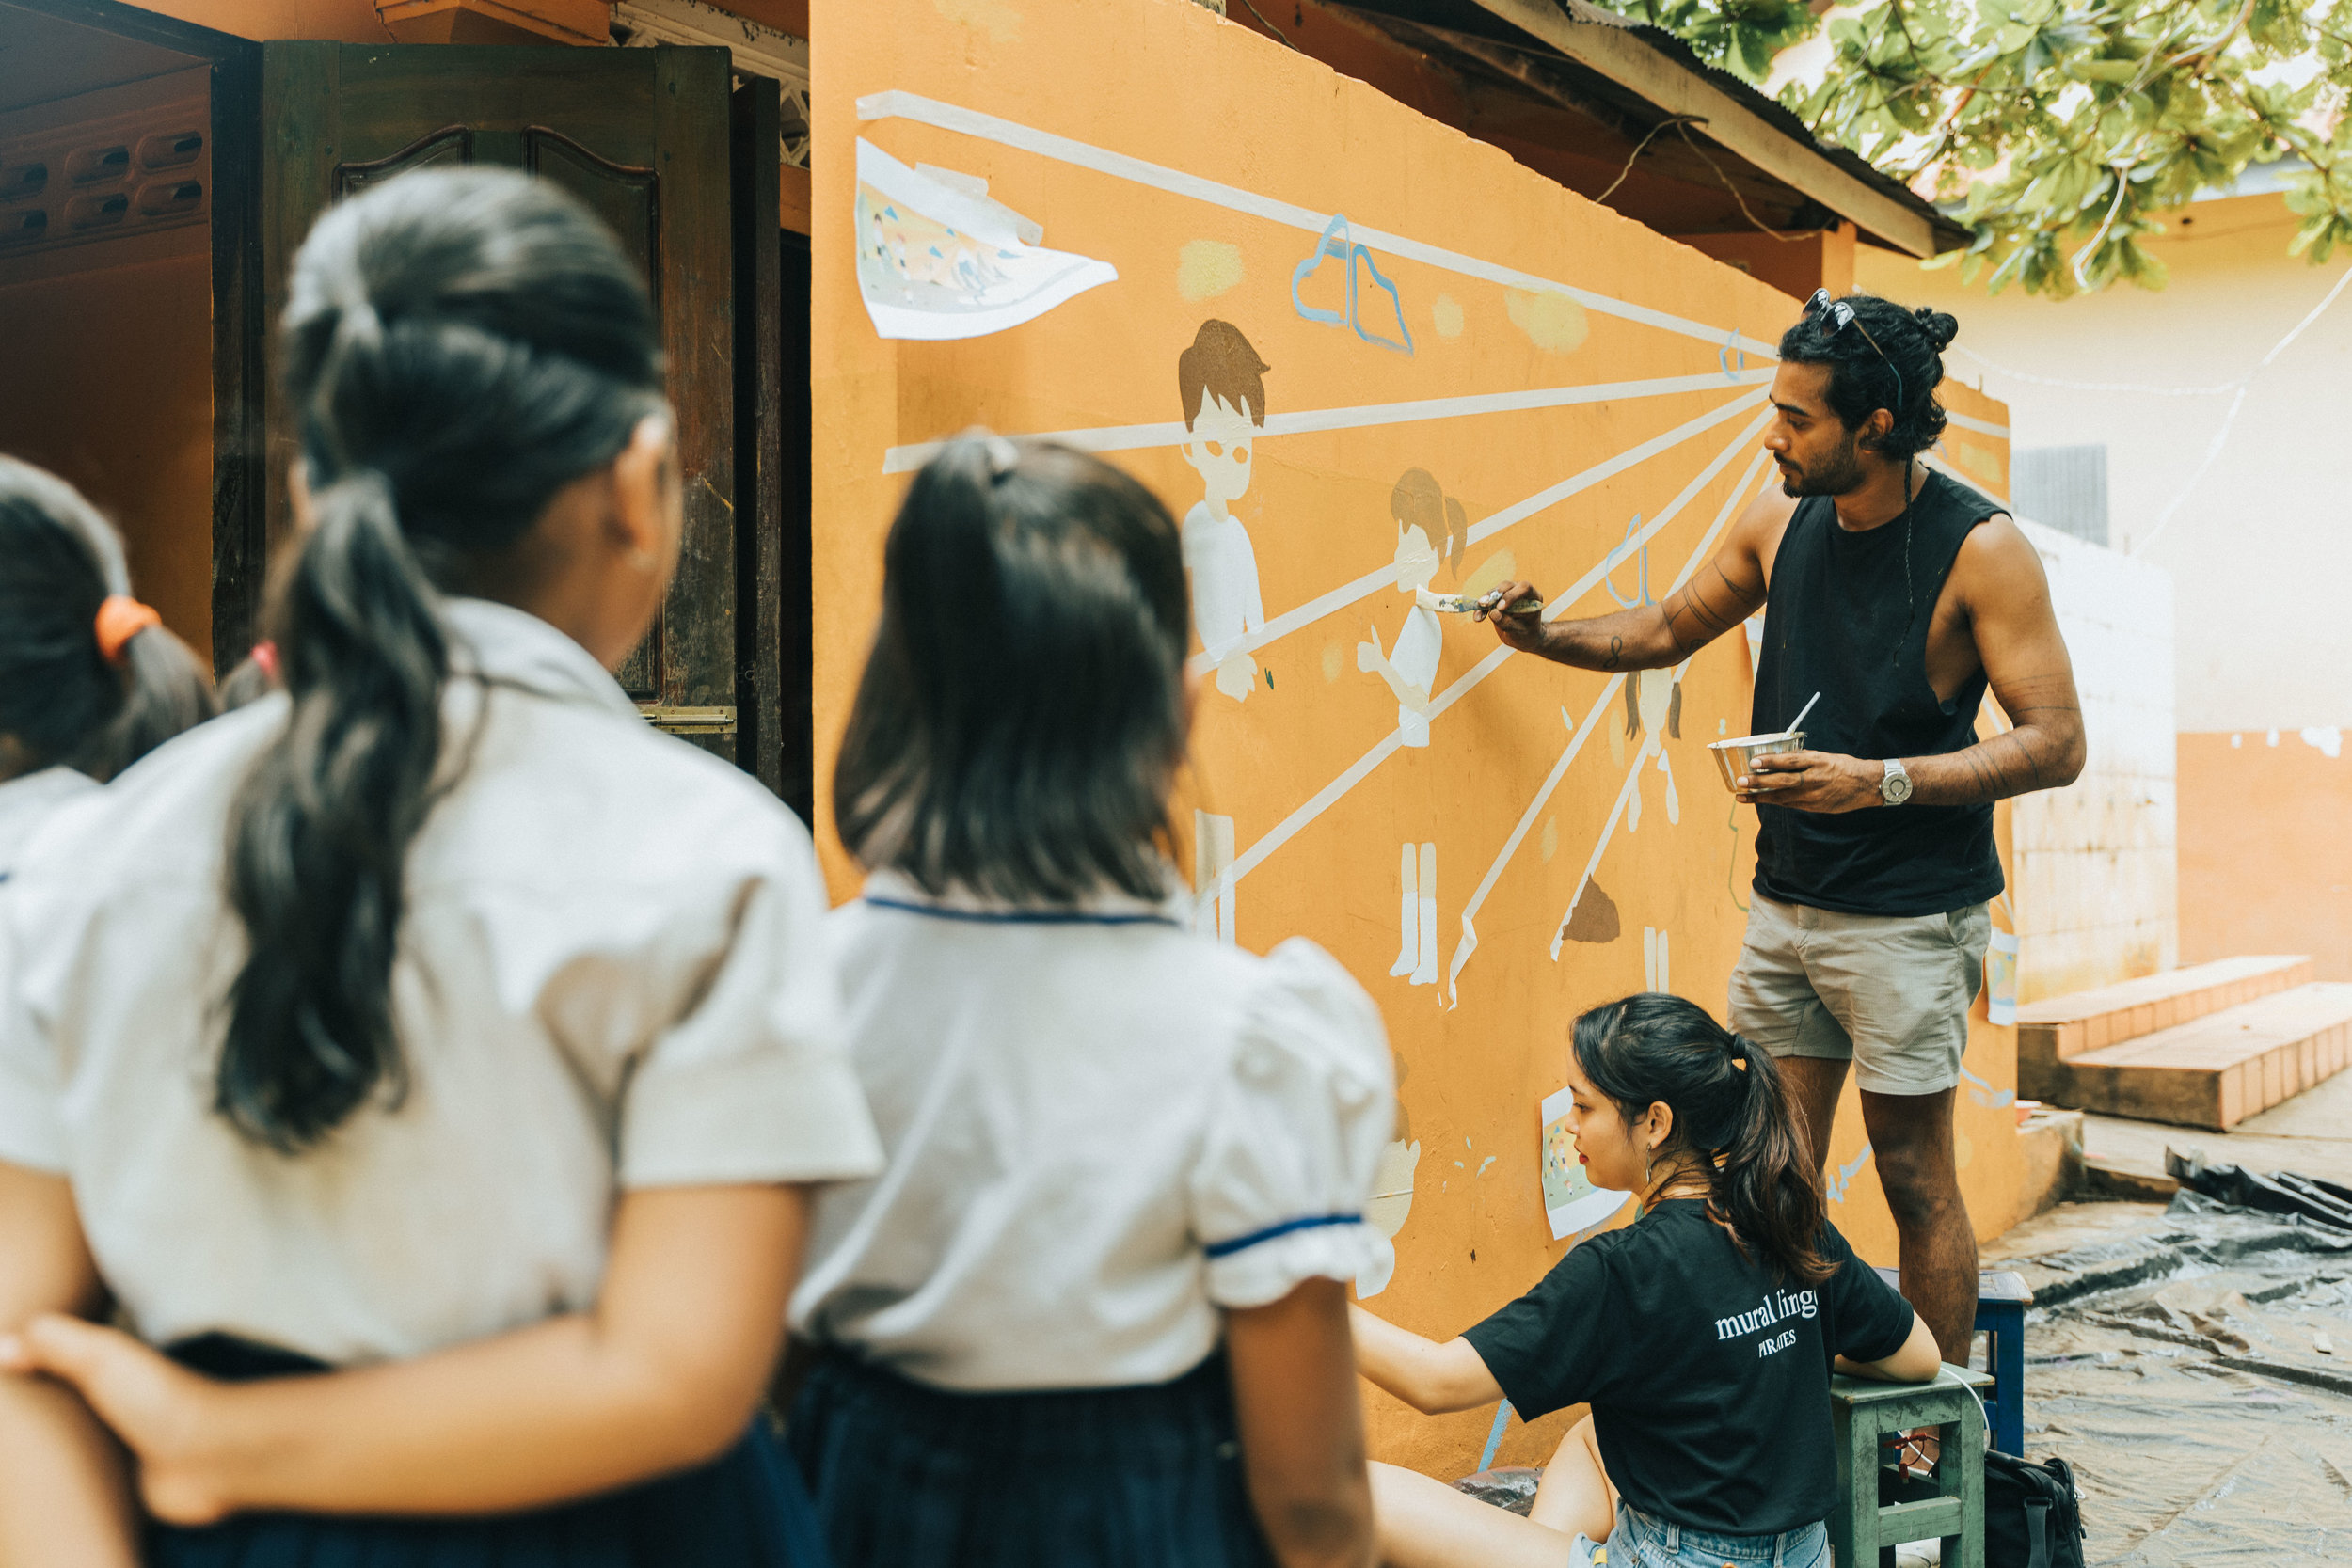 Caring for Cambodia, Community Mural at CFC, Siem Reap, Cambodia (2019)